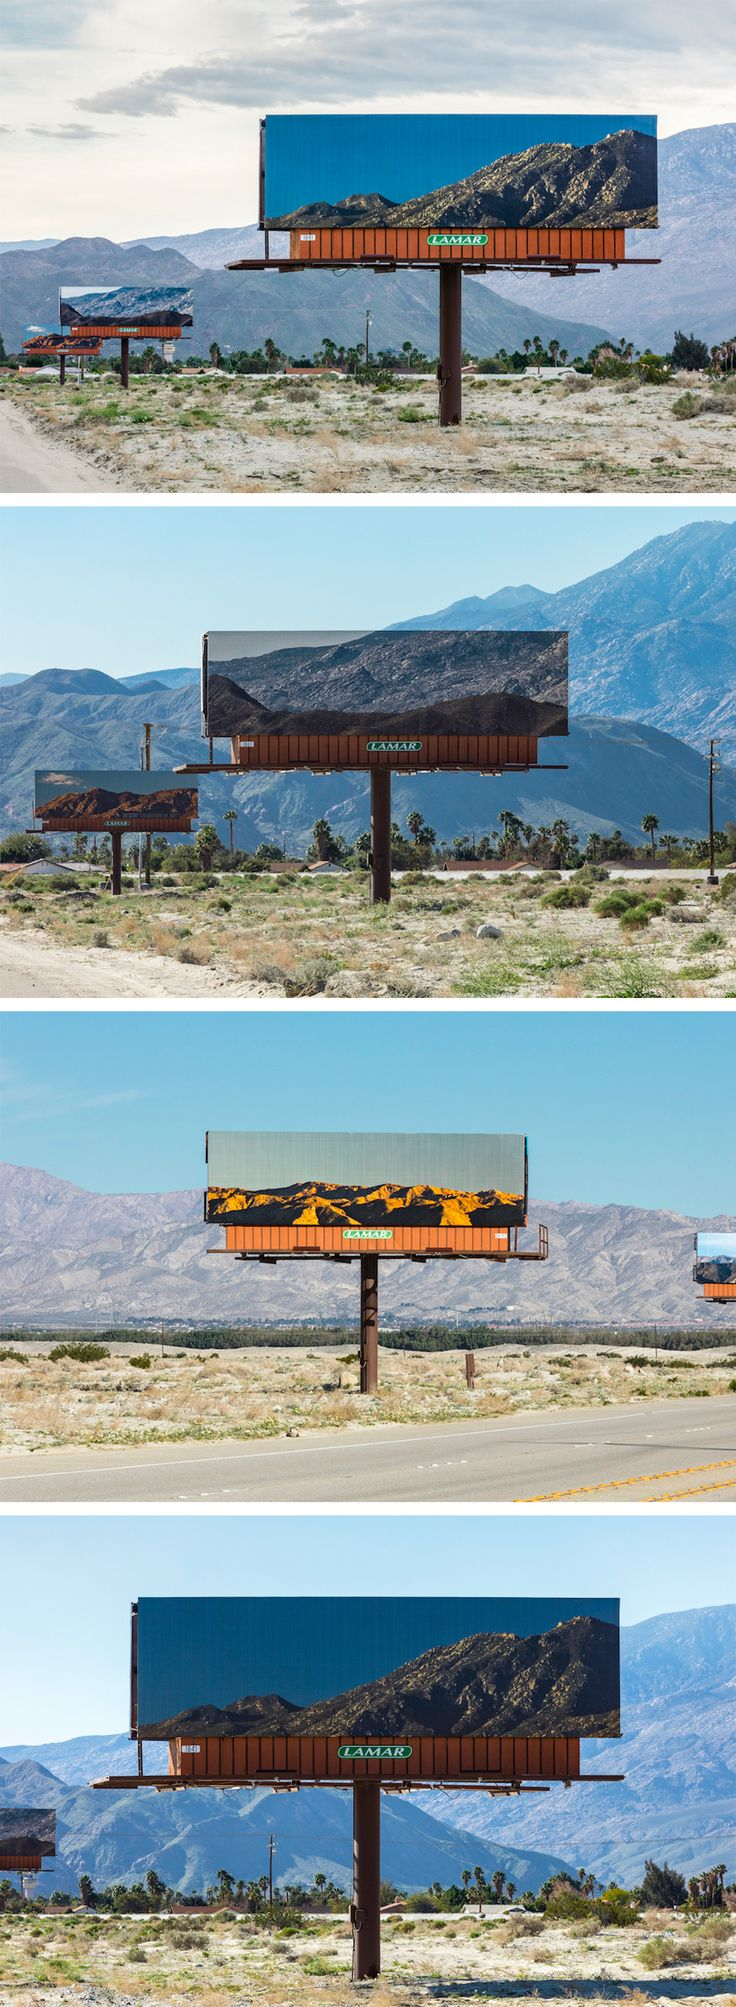 Billboards That Advertise the Surrounding California Landscape by Jennifer Bolande